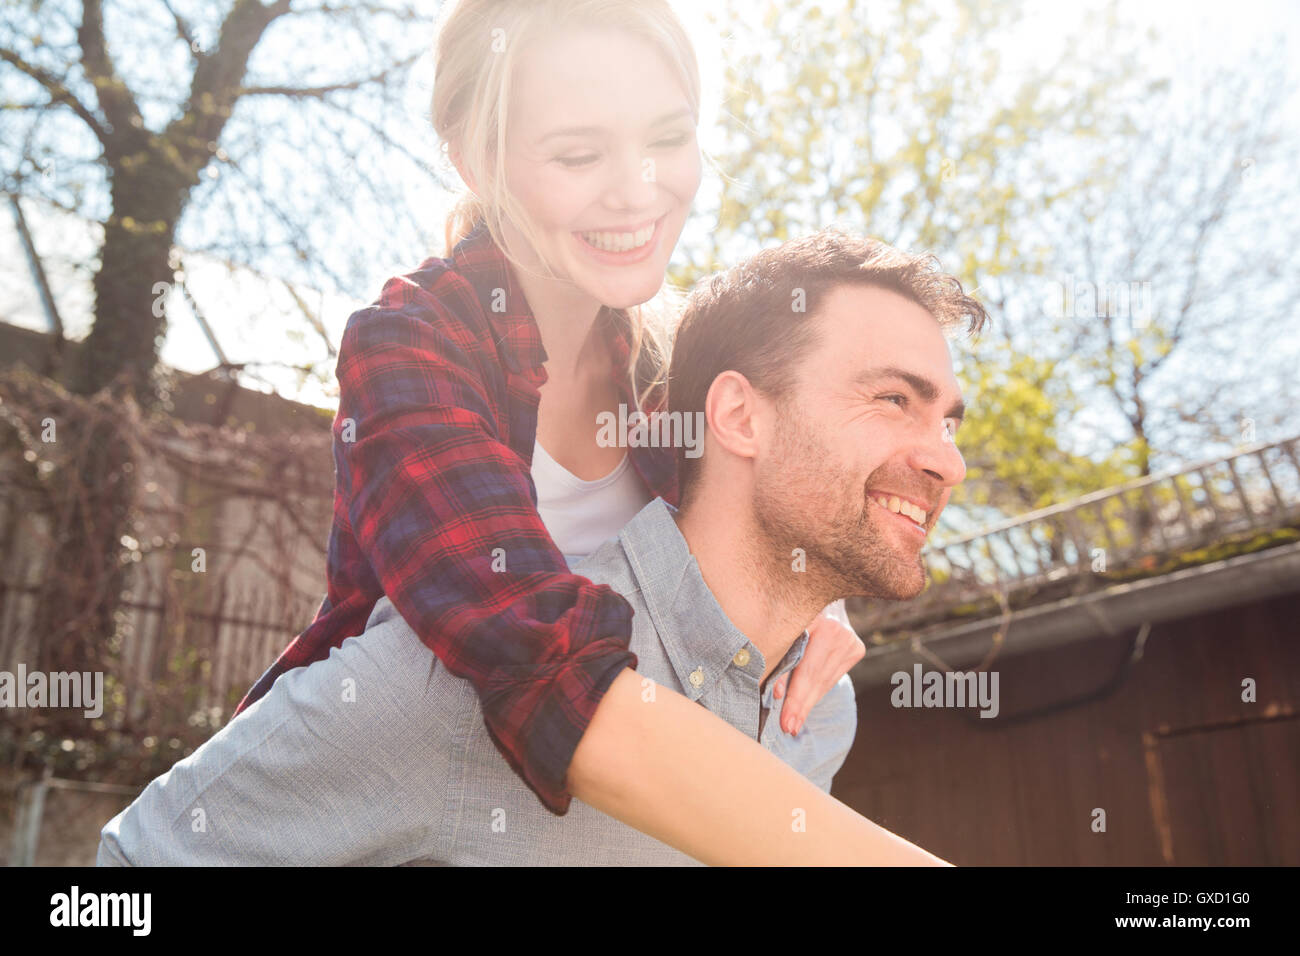 Man giving woman piggyback smiling Photo Stock